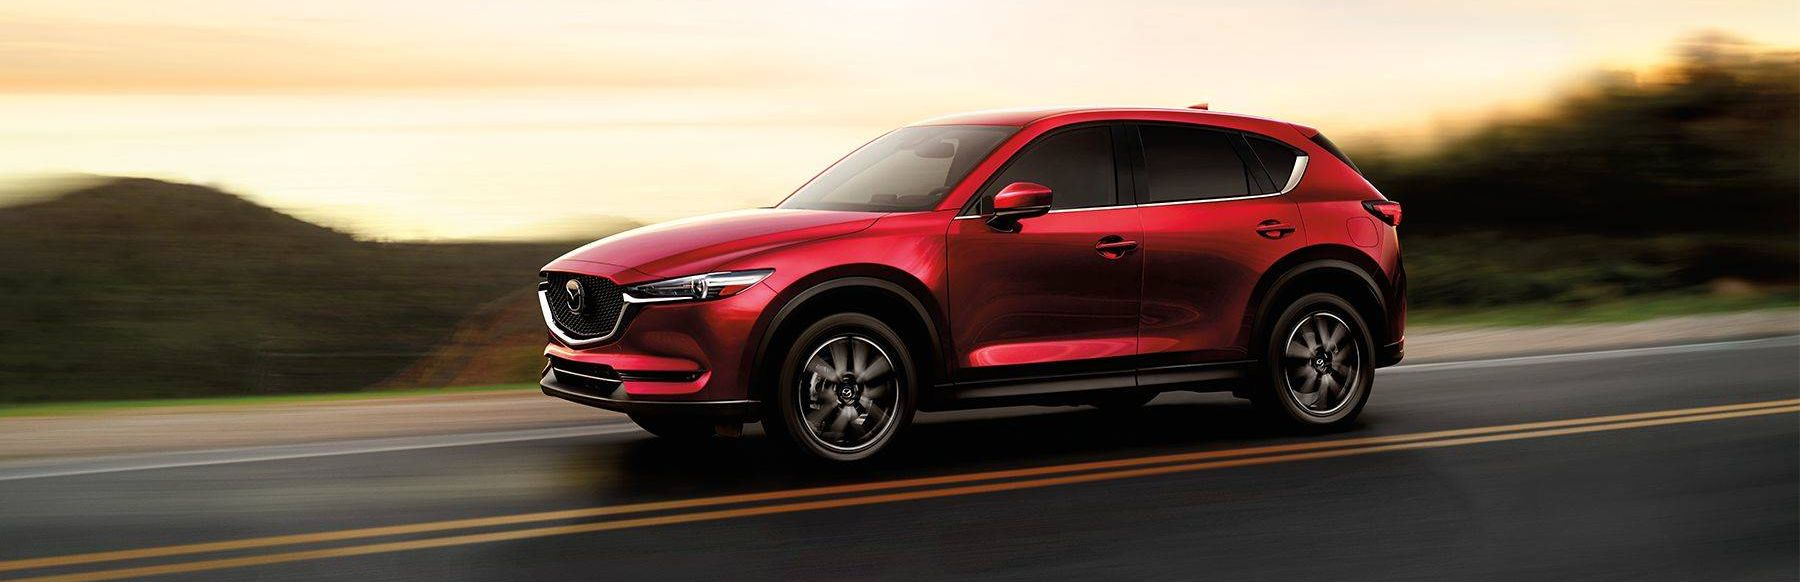 2018 Mazda CX-5 Leasing in San Antonio, TX